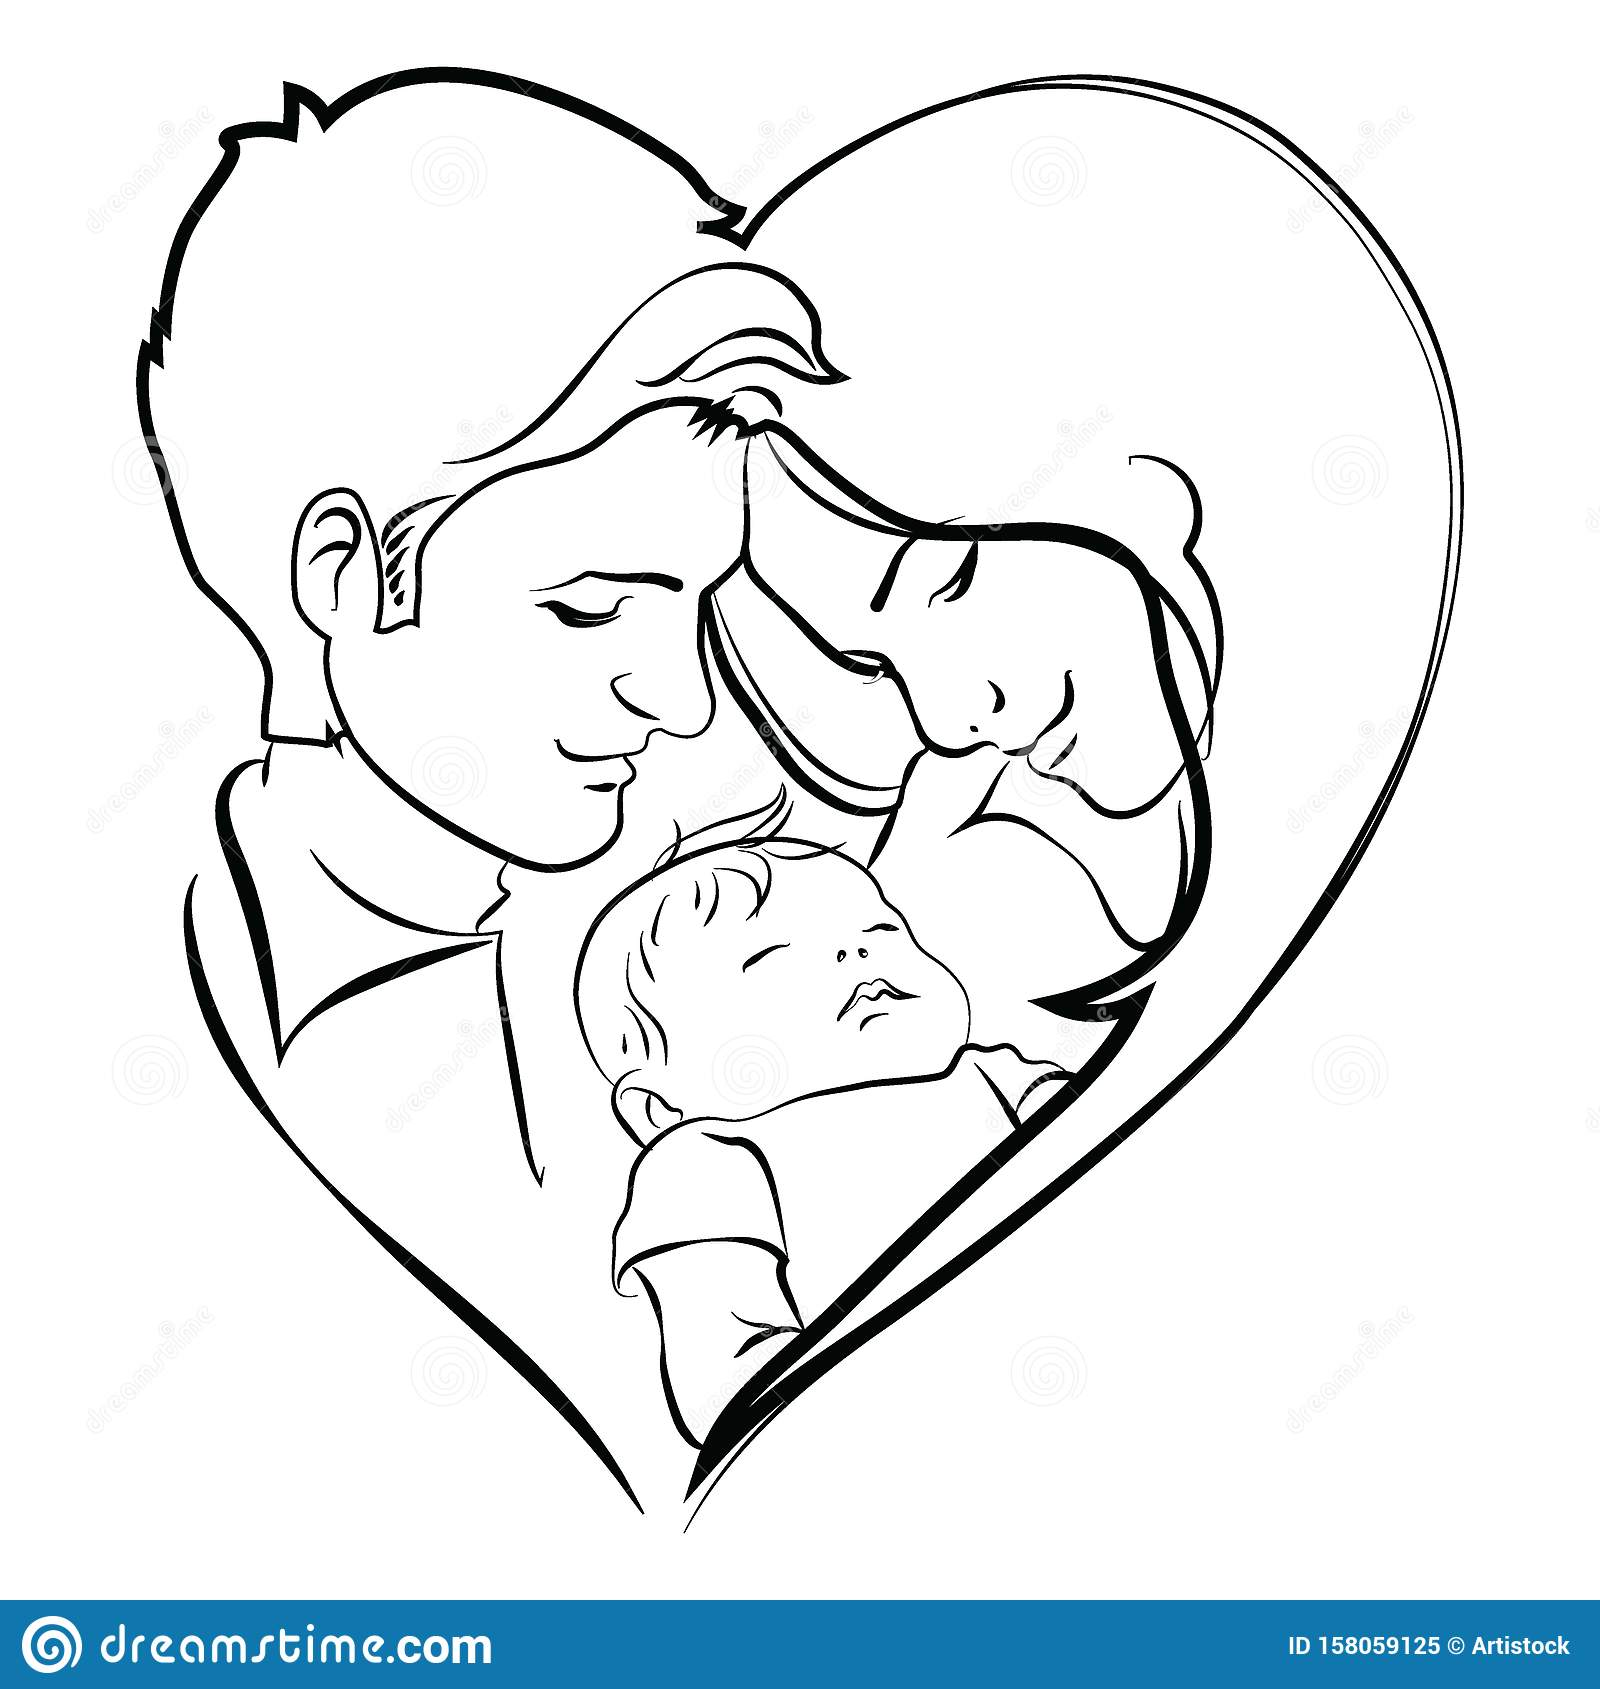 Family With Baby Father And Mother Hug Their Child Black And White Logo Of A Young Family Linear Art Tattoo Stock Vector Illustration Of Daughter Cute 158059125